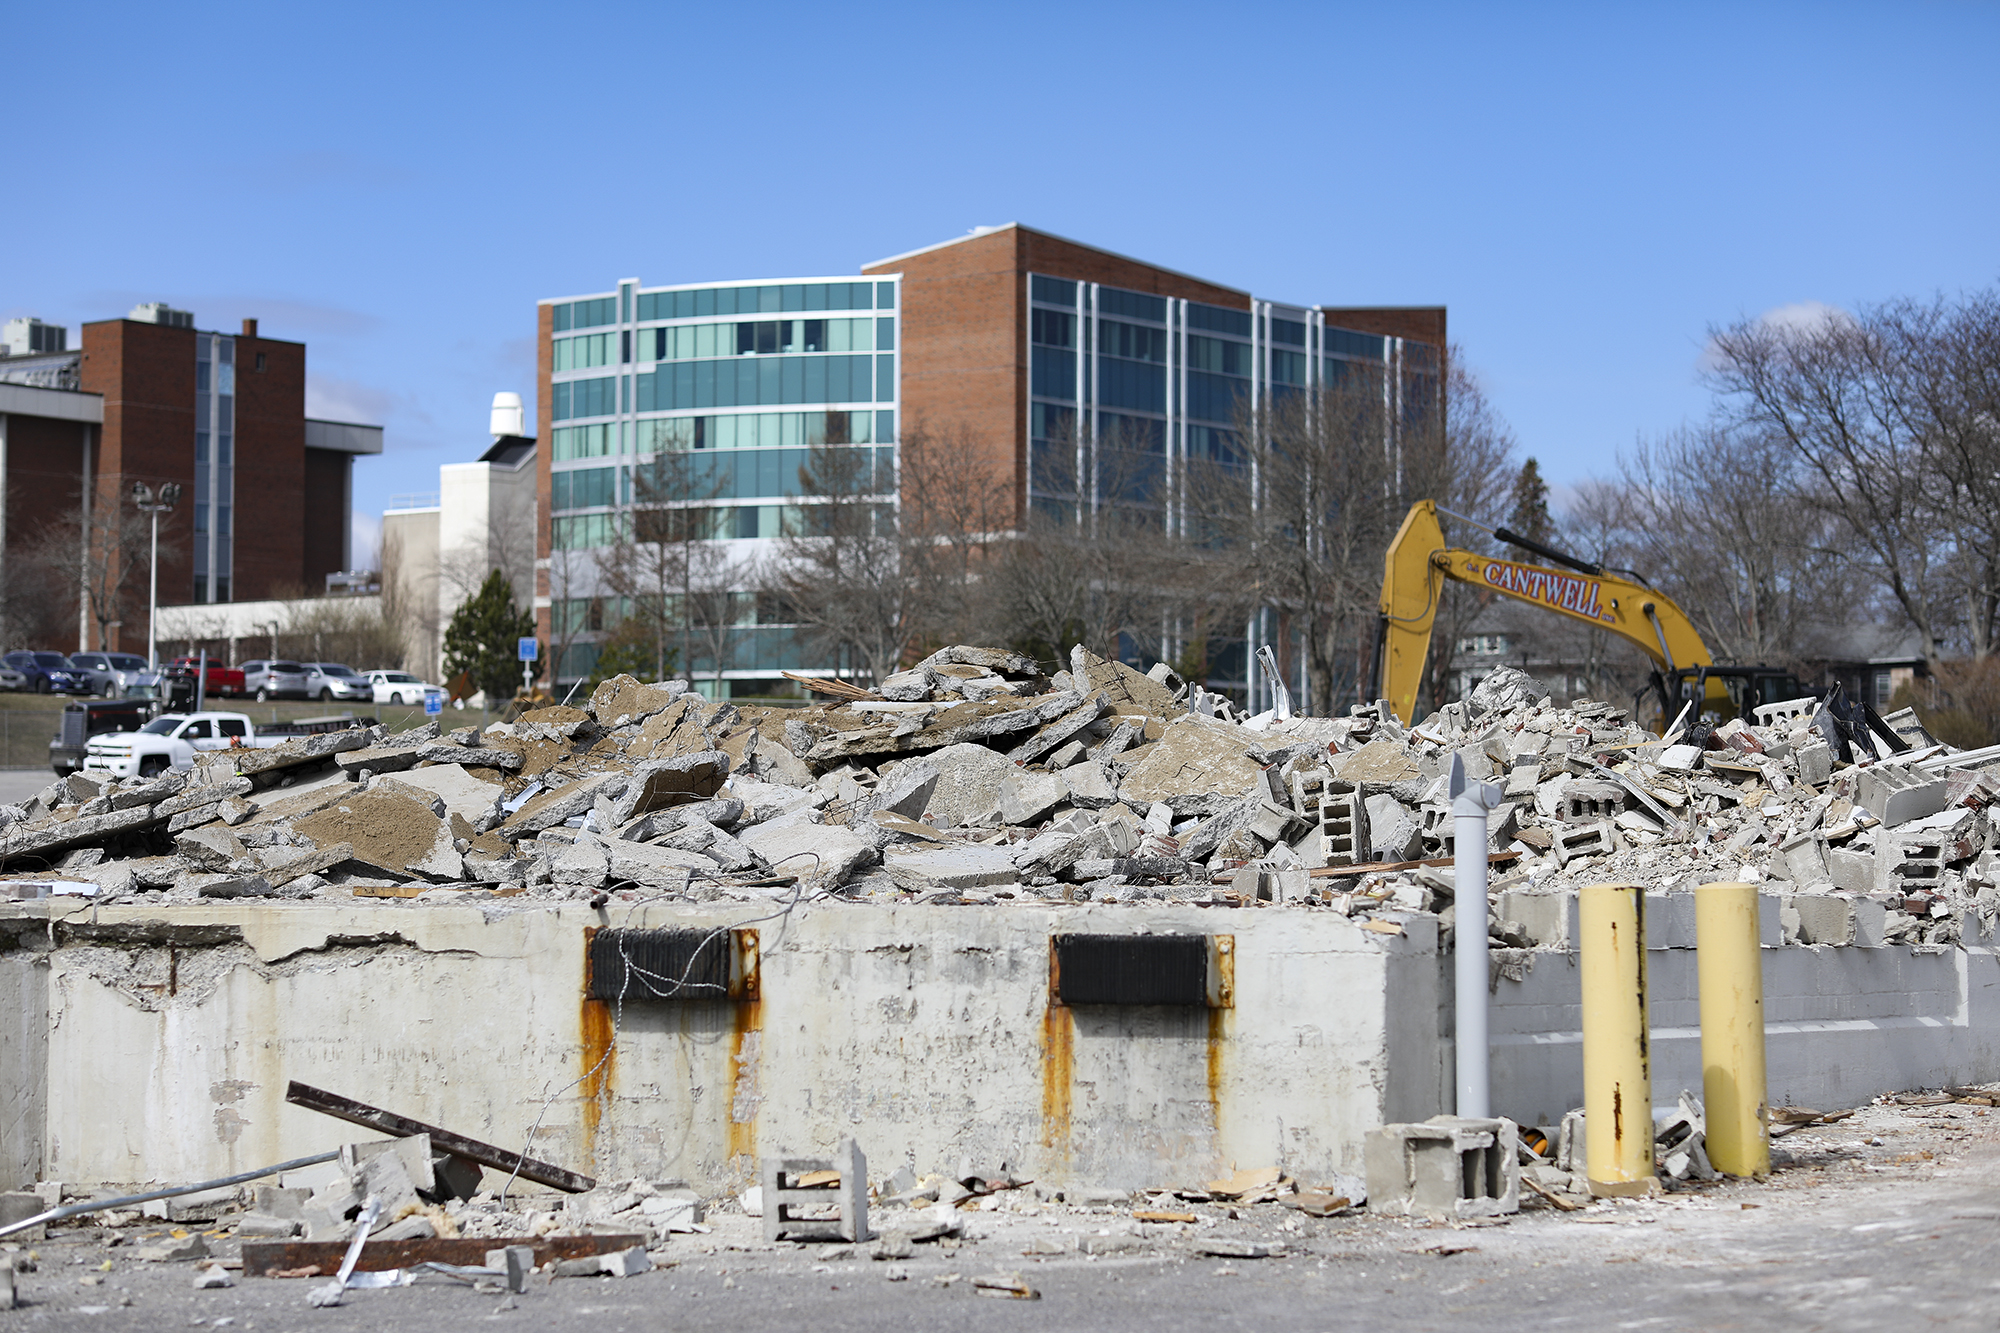 A photo of the foundation remains of Woodbury Campus Center